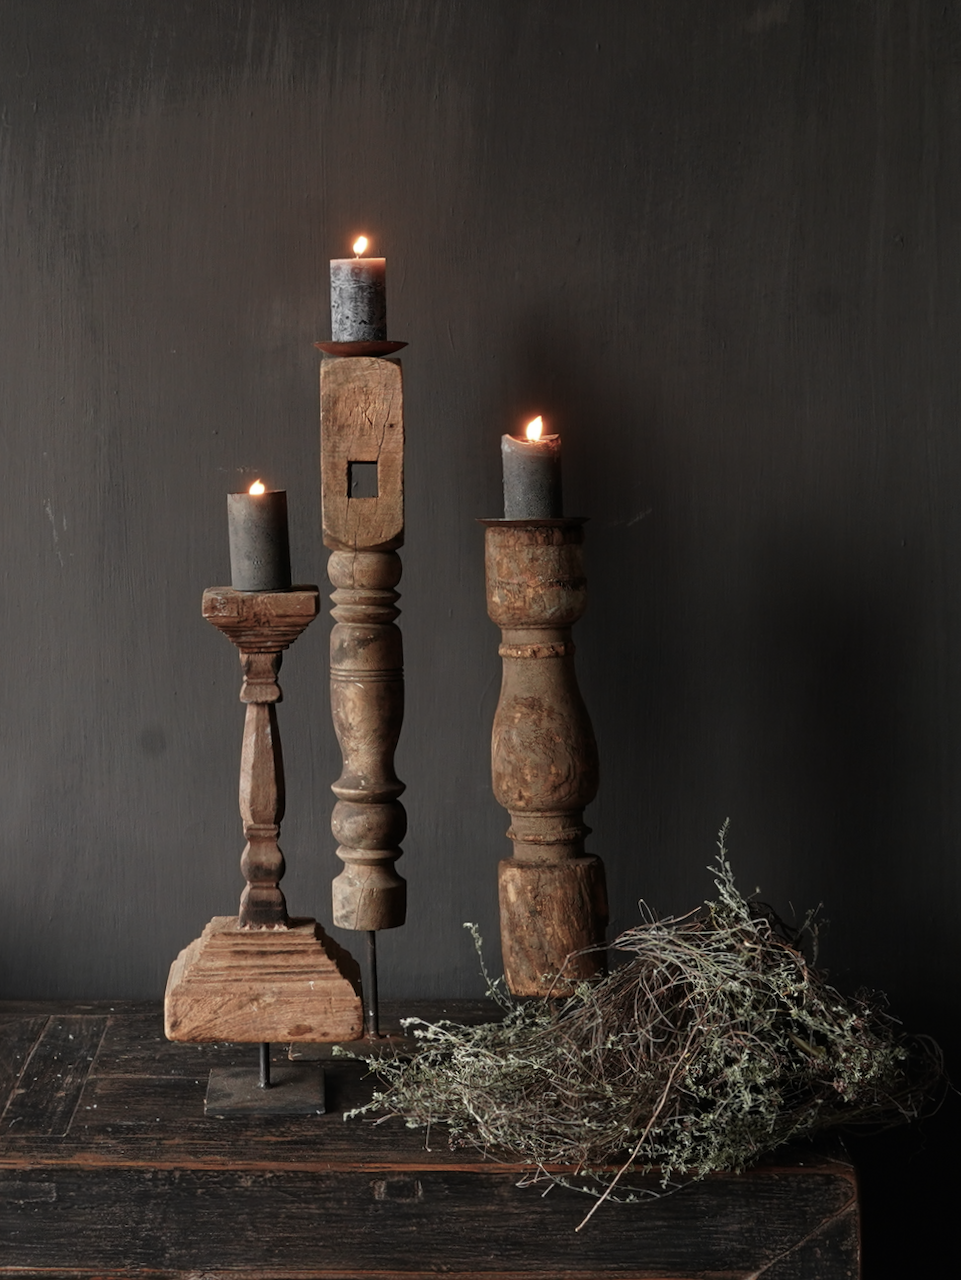 Wooden Nepalese candlestick made of old ornament-6